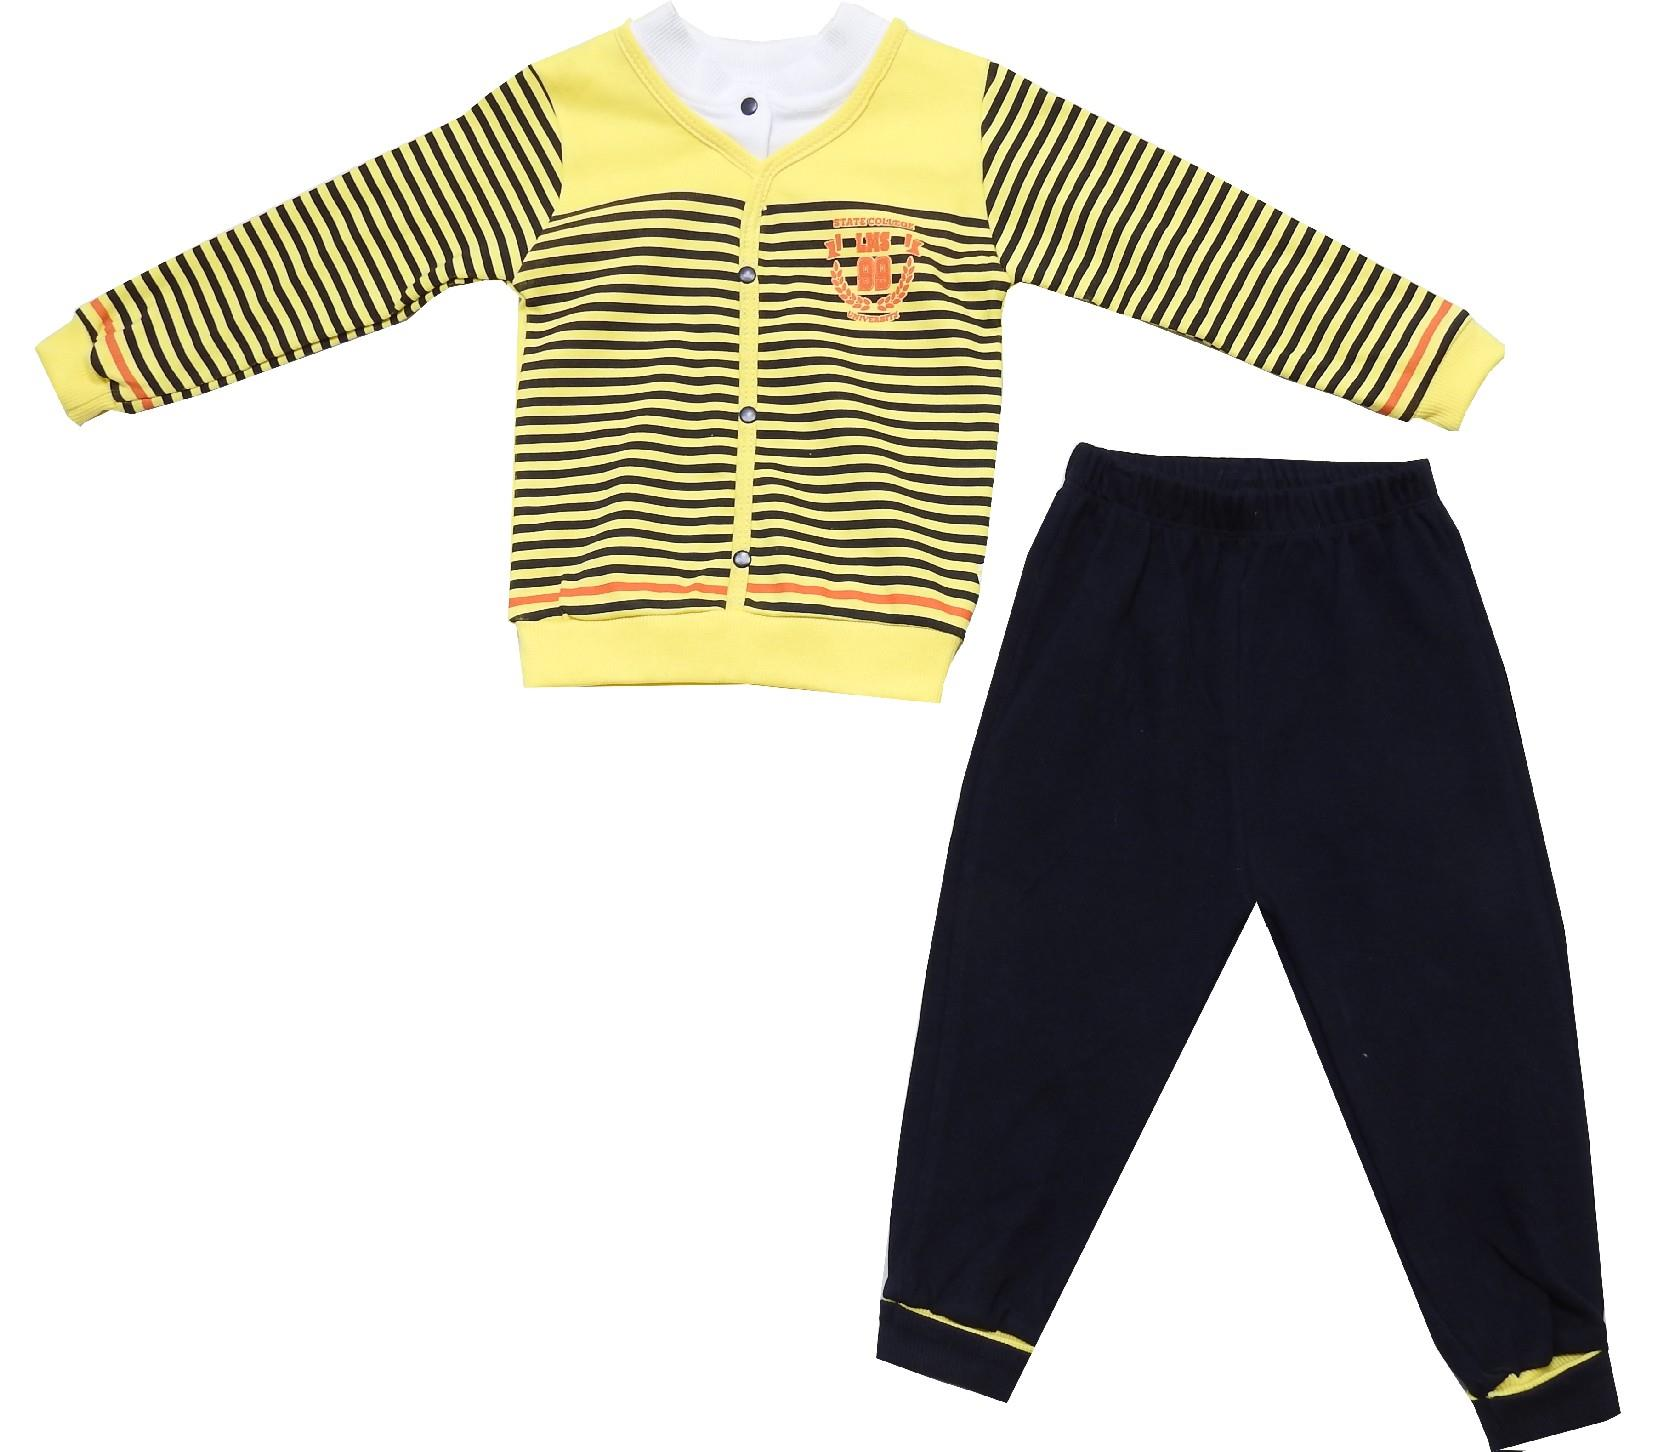 Wholesale striped design swater and trouser double set suit for boy (6-12-18-24 month)